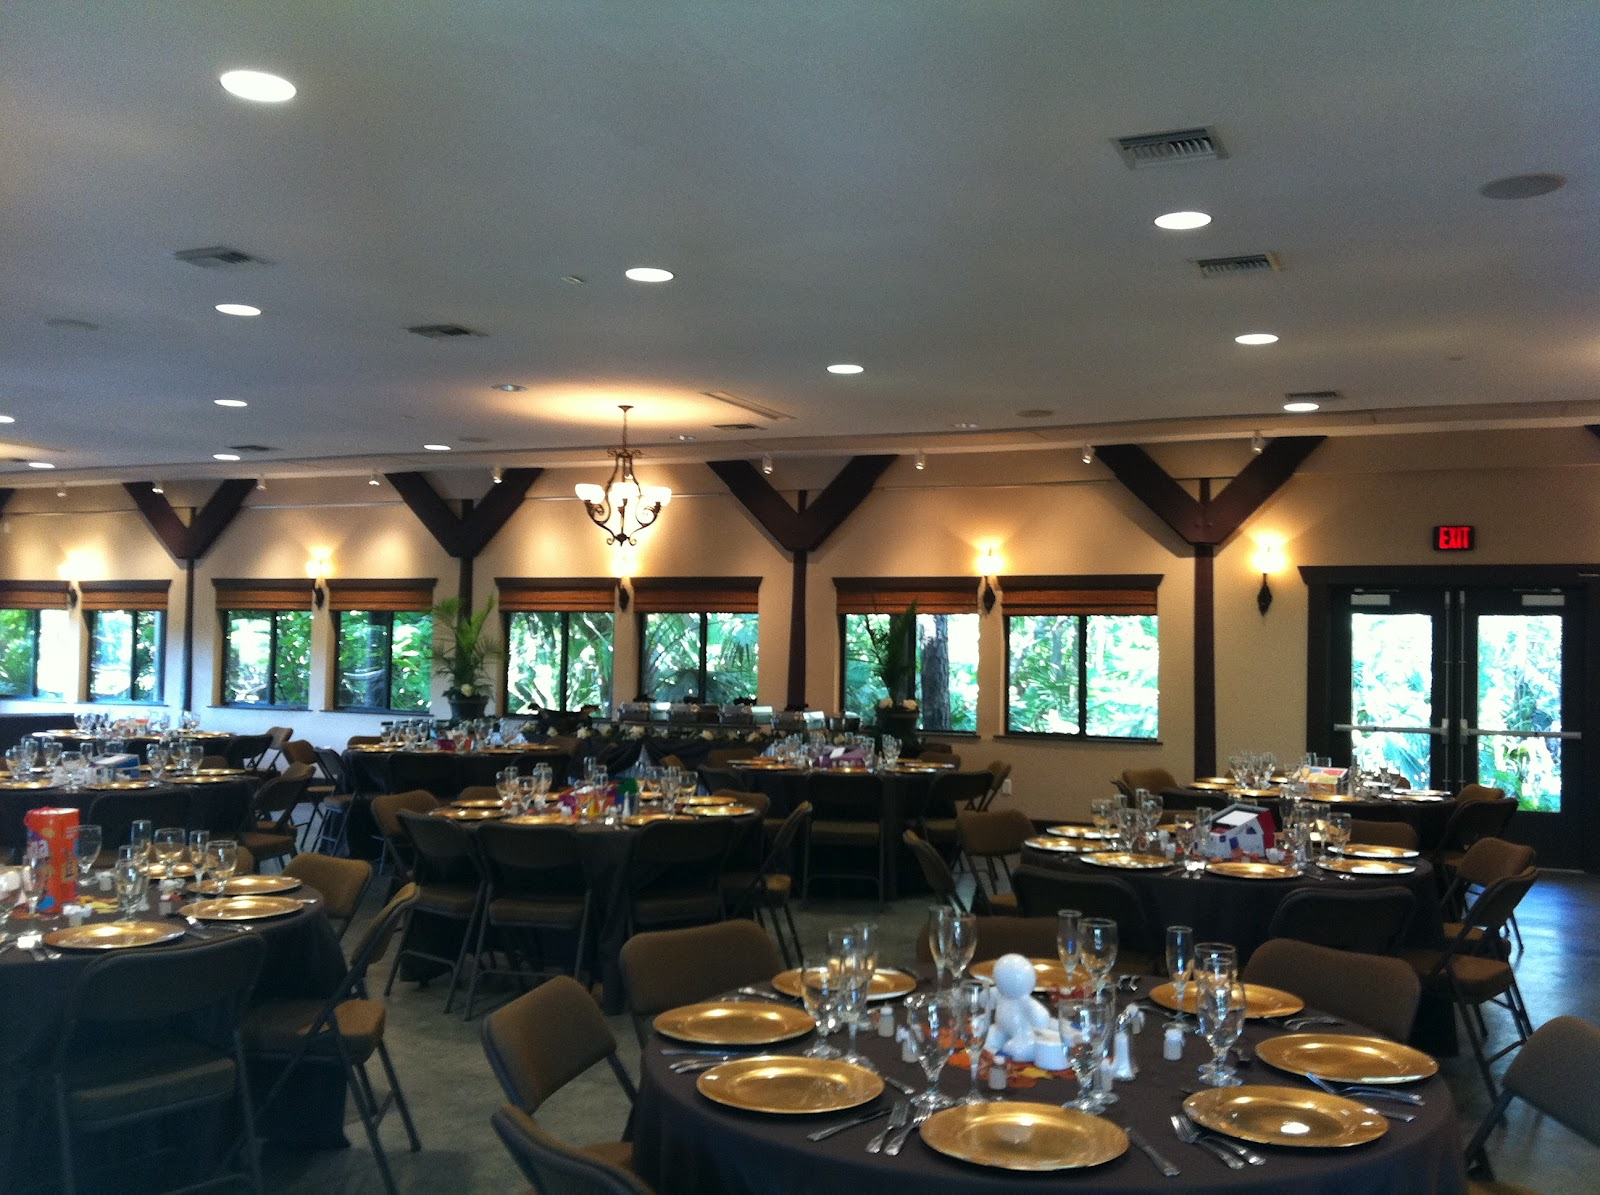 Renaissance Catering 187 Blog Archive 187 Brevard Zoo We Do